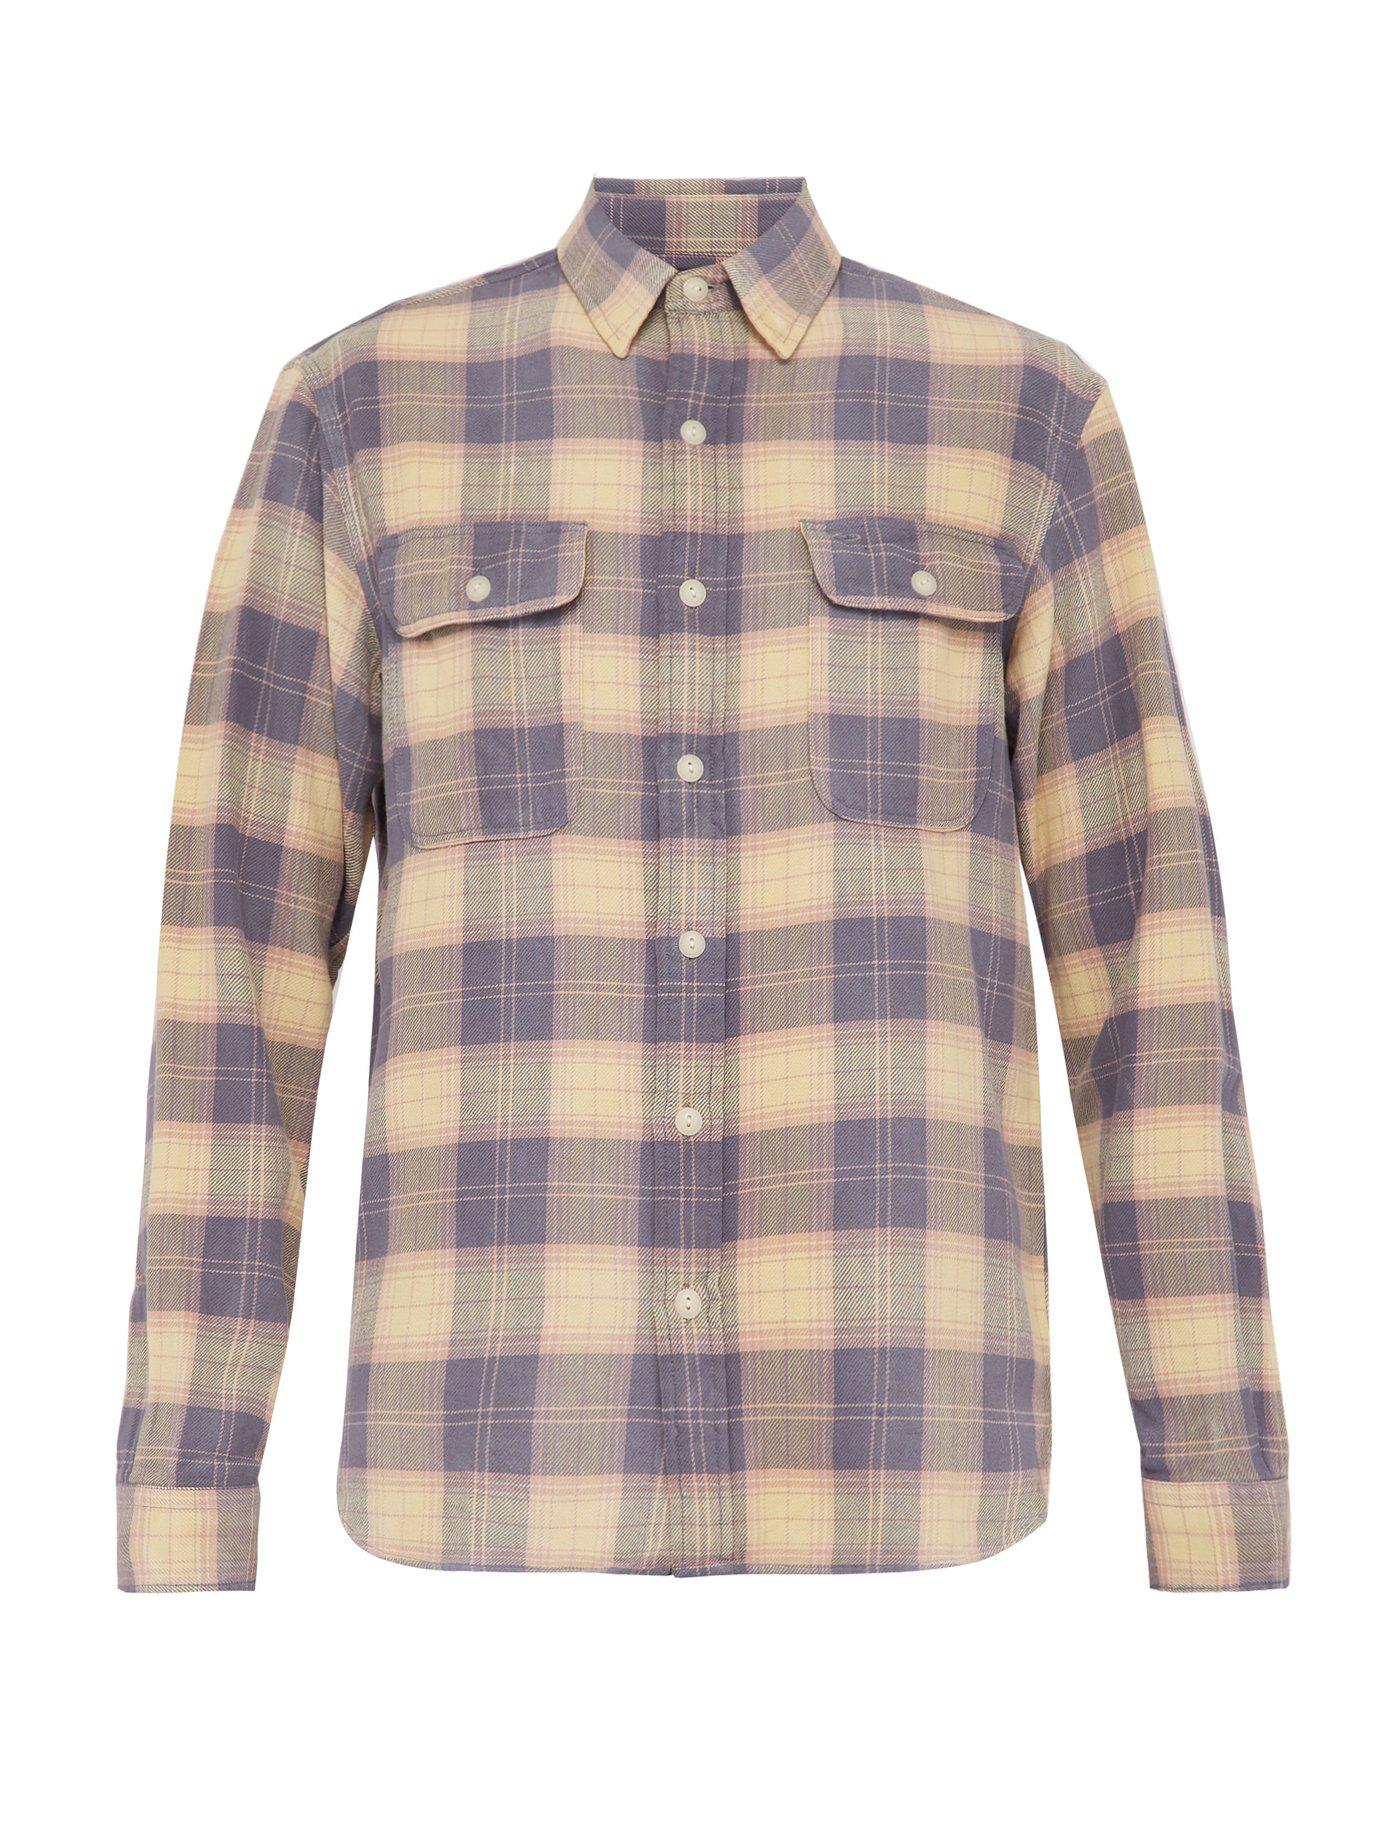 c624f6a3 RRL Checked Cotton Flannel Work Shirt in Blue for Men - Lyst